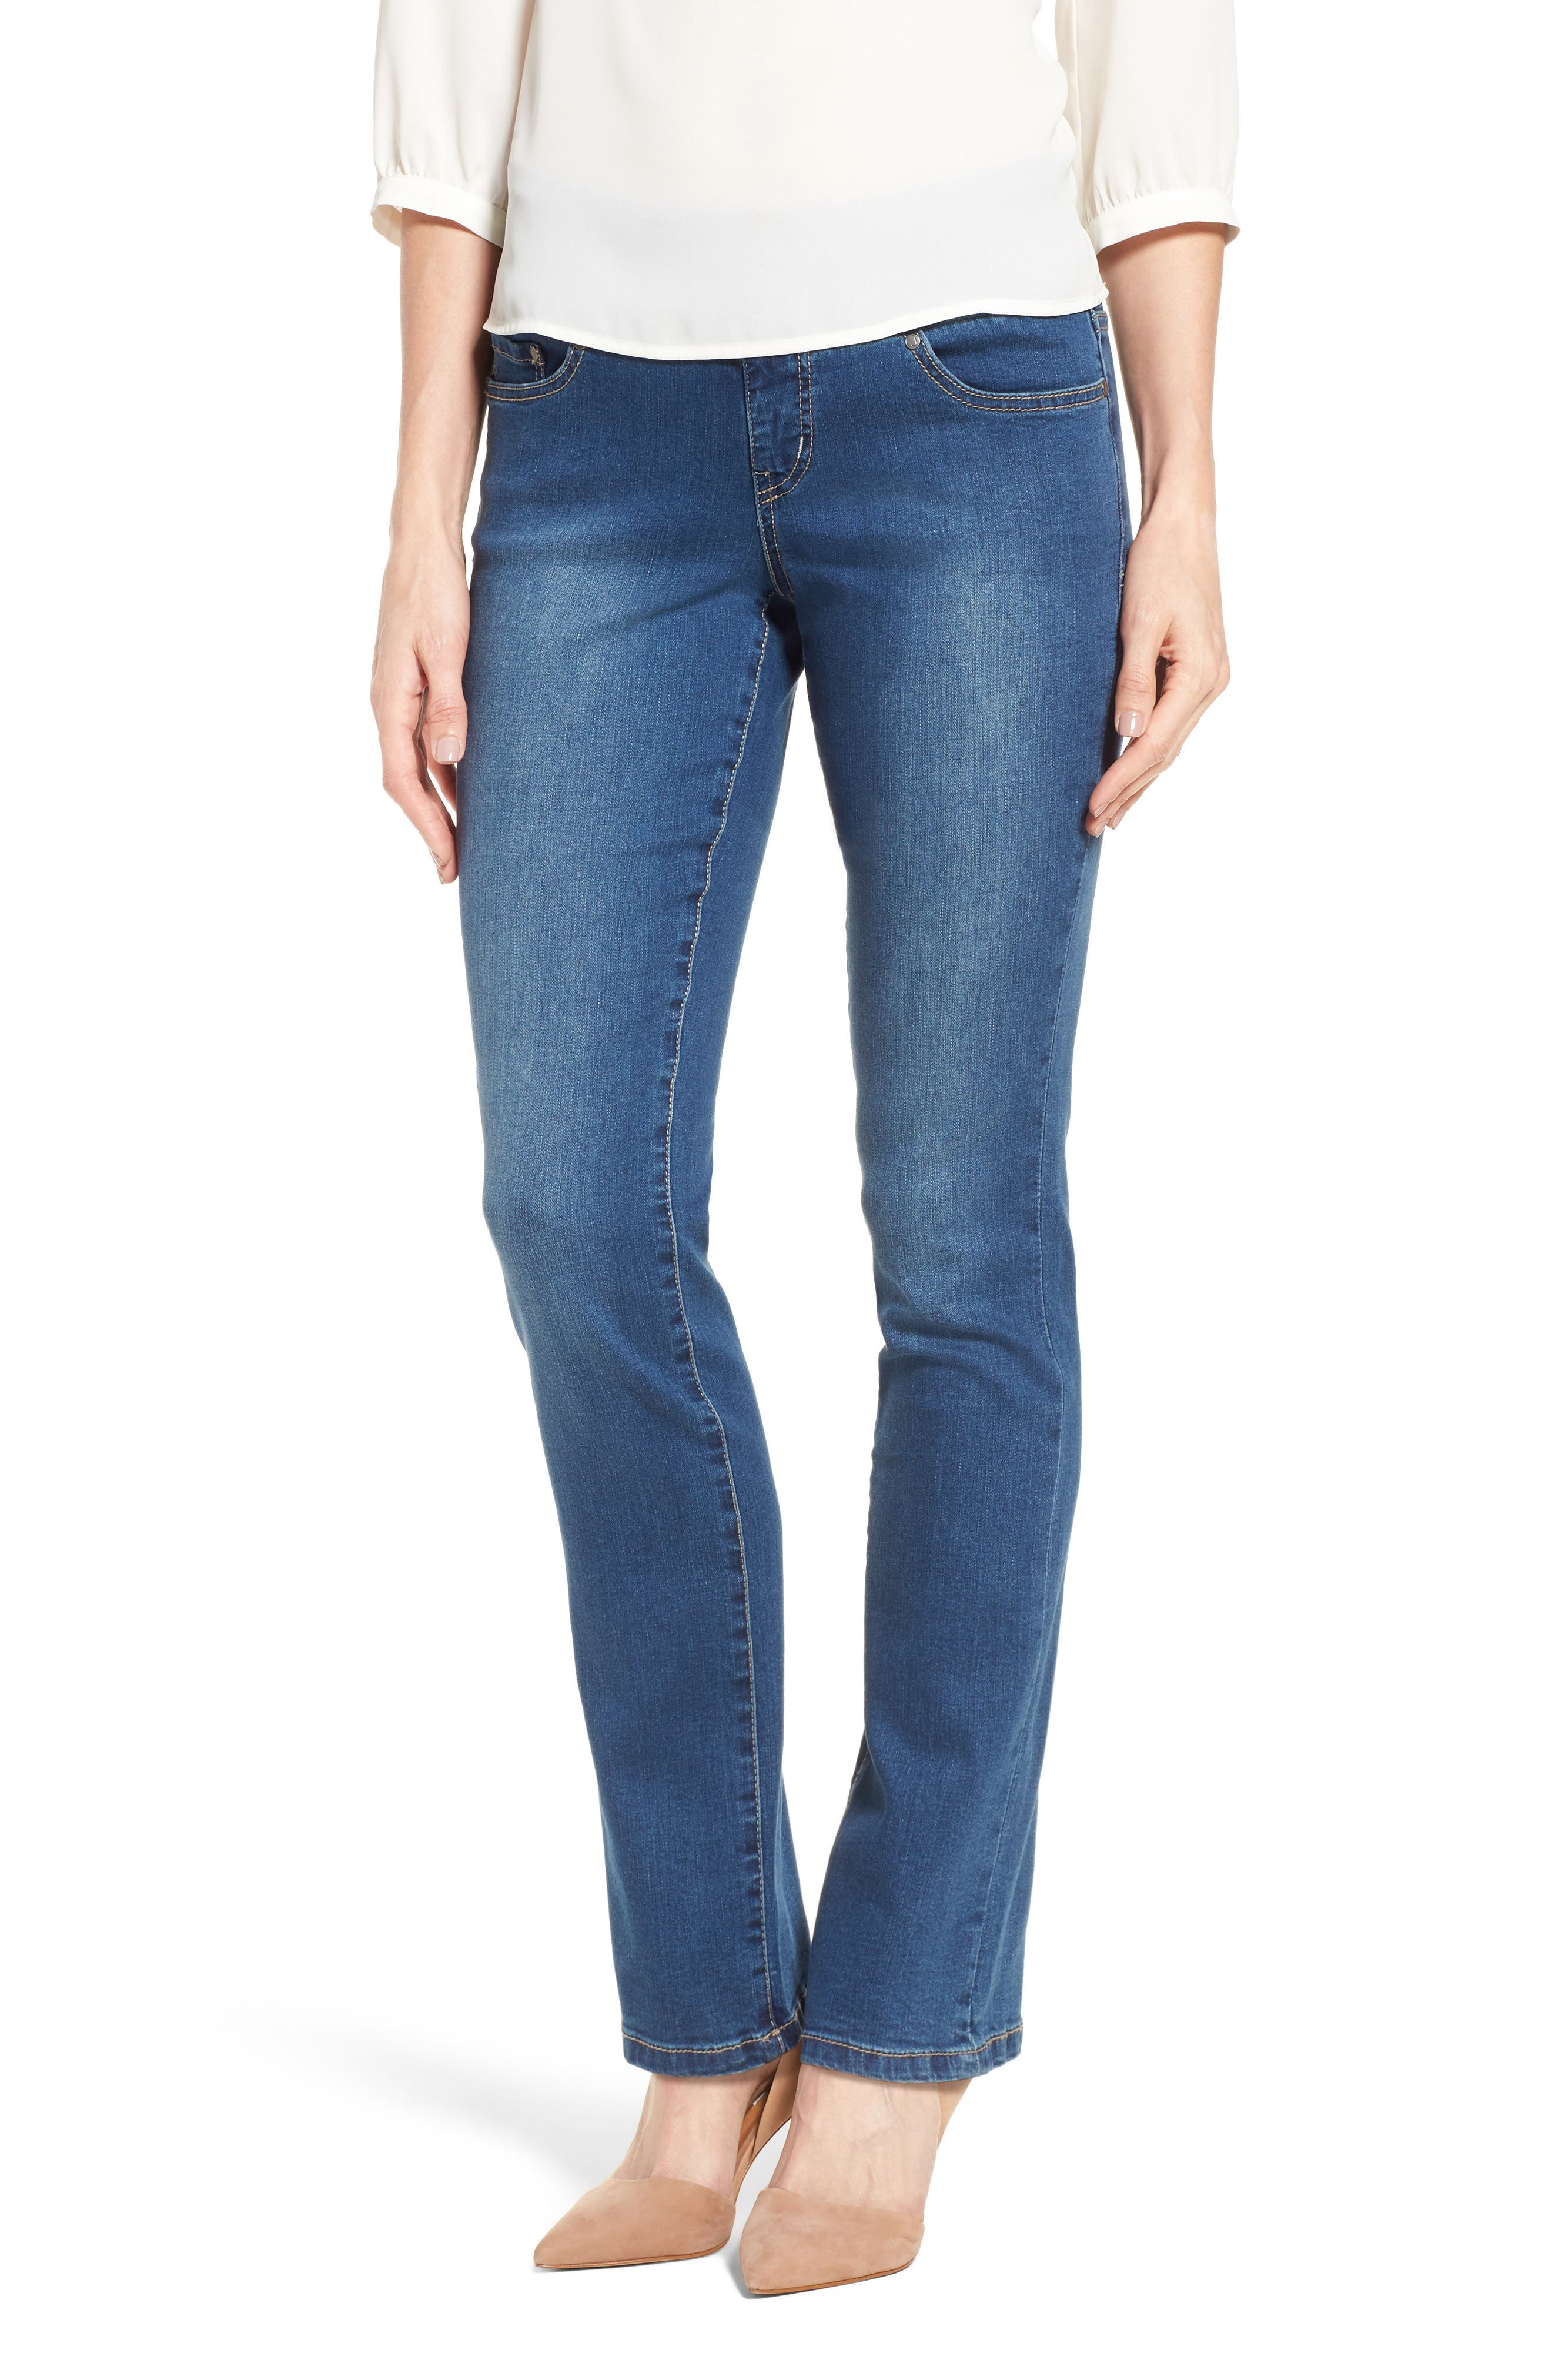 Women's Jag Jeans Peri Pull-On Straight Leg Jeans